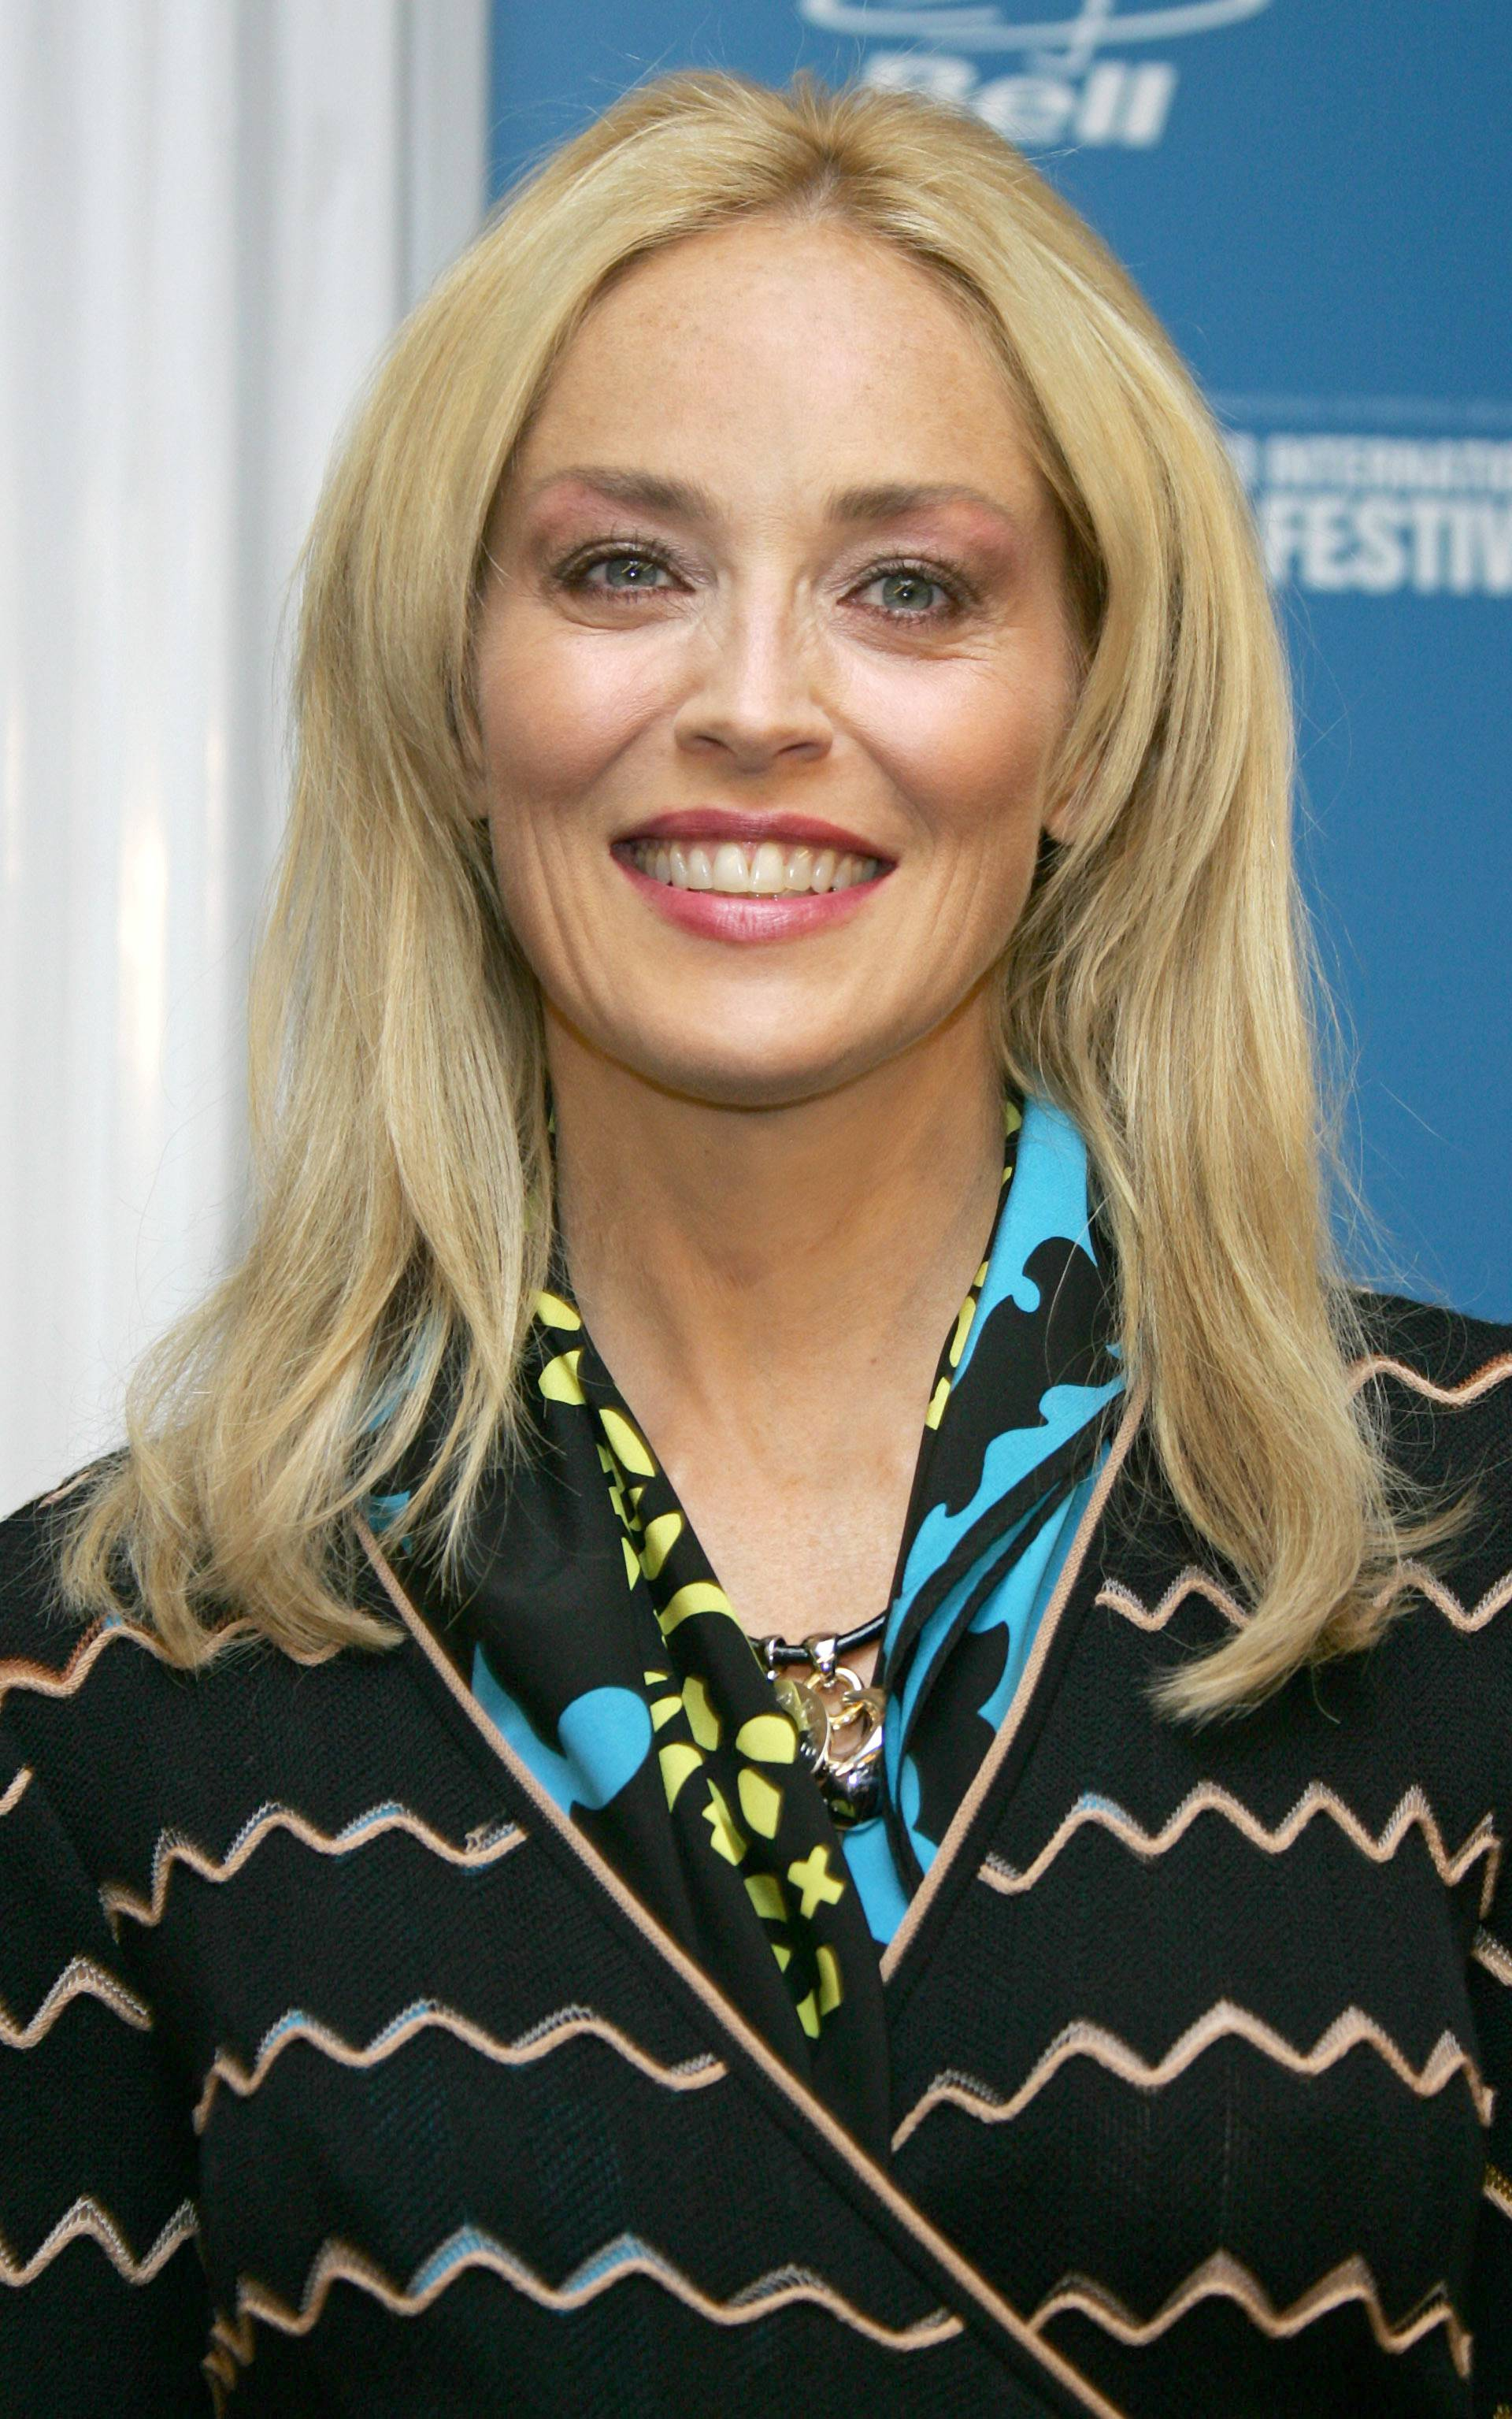 Toronto International Film Festival - Sharon Stone